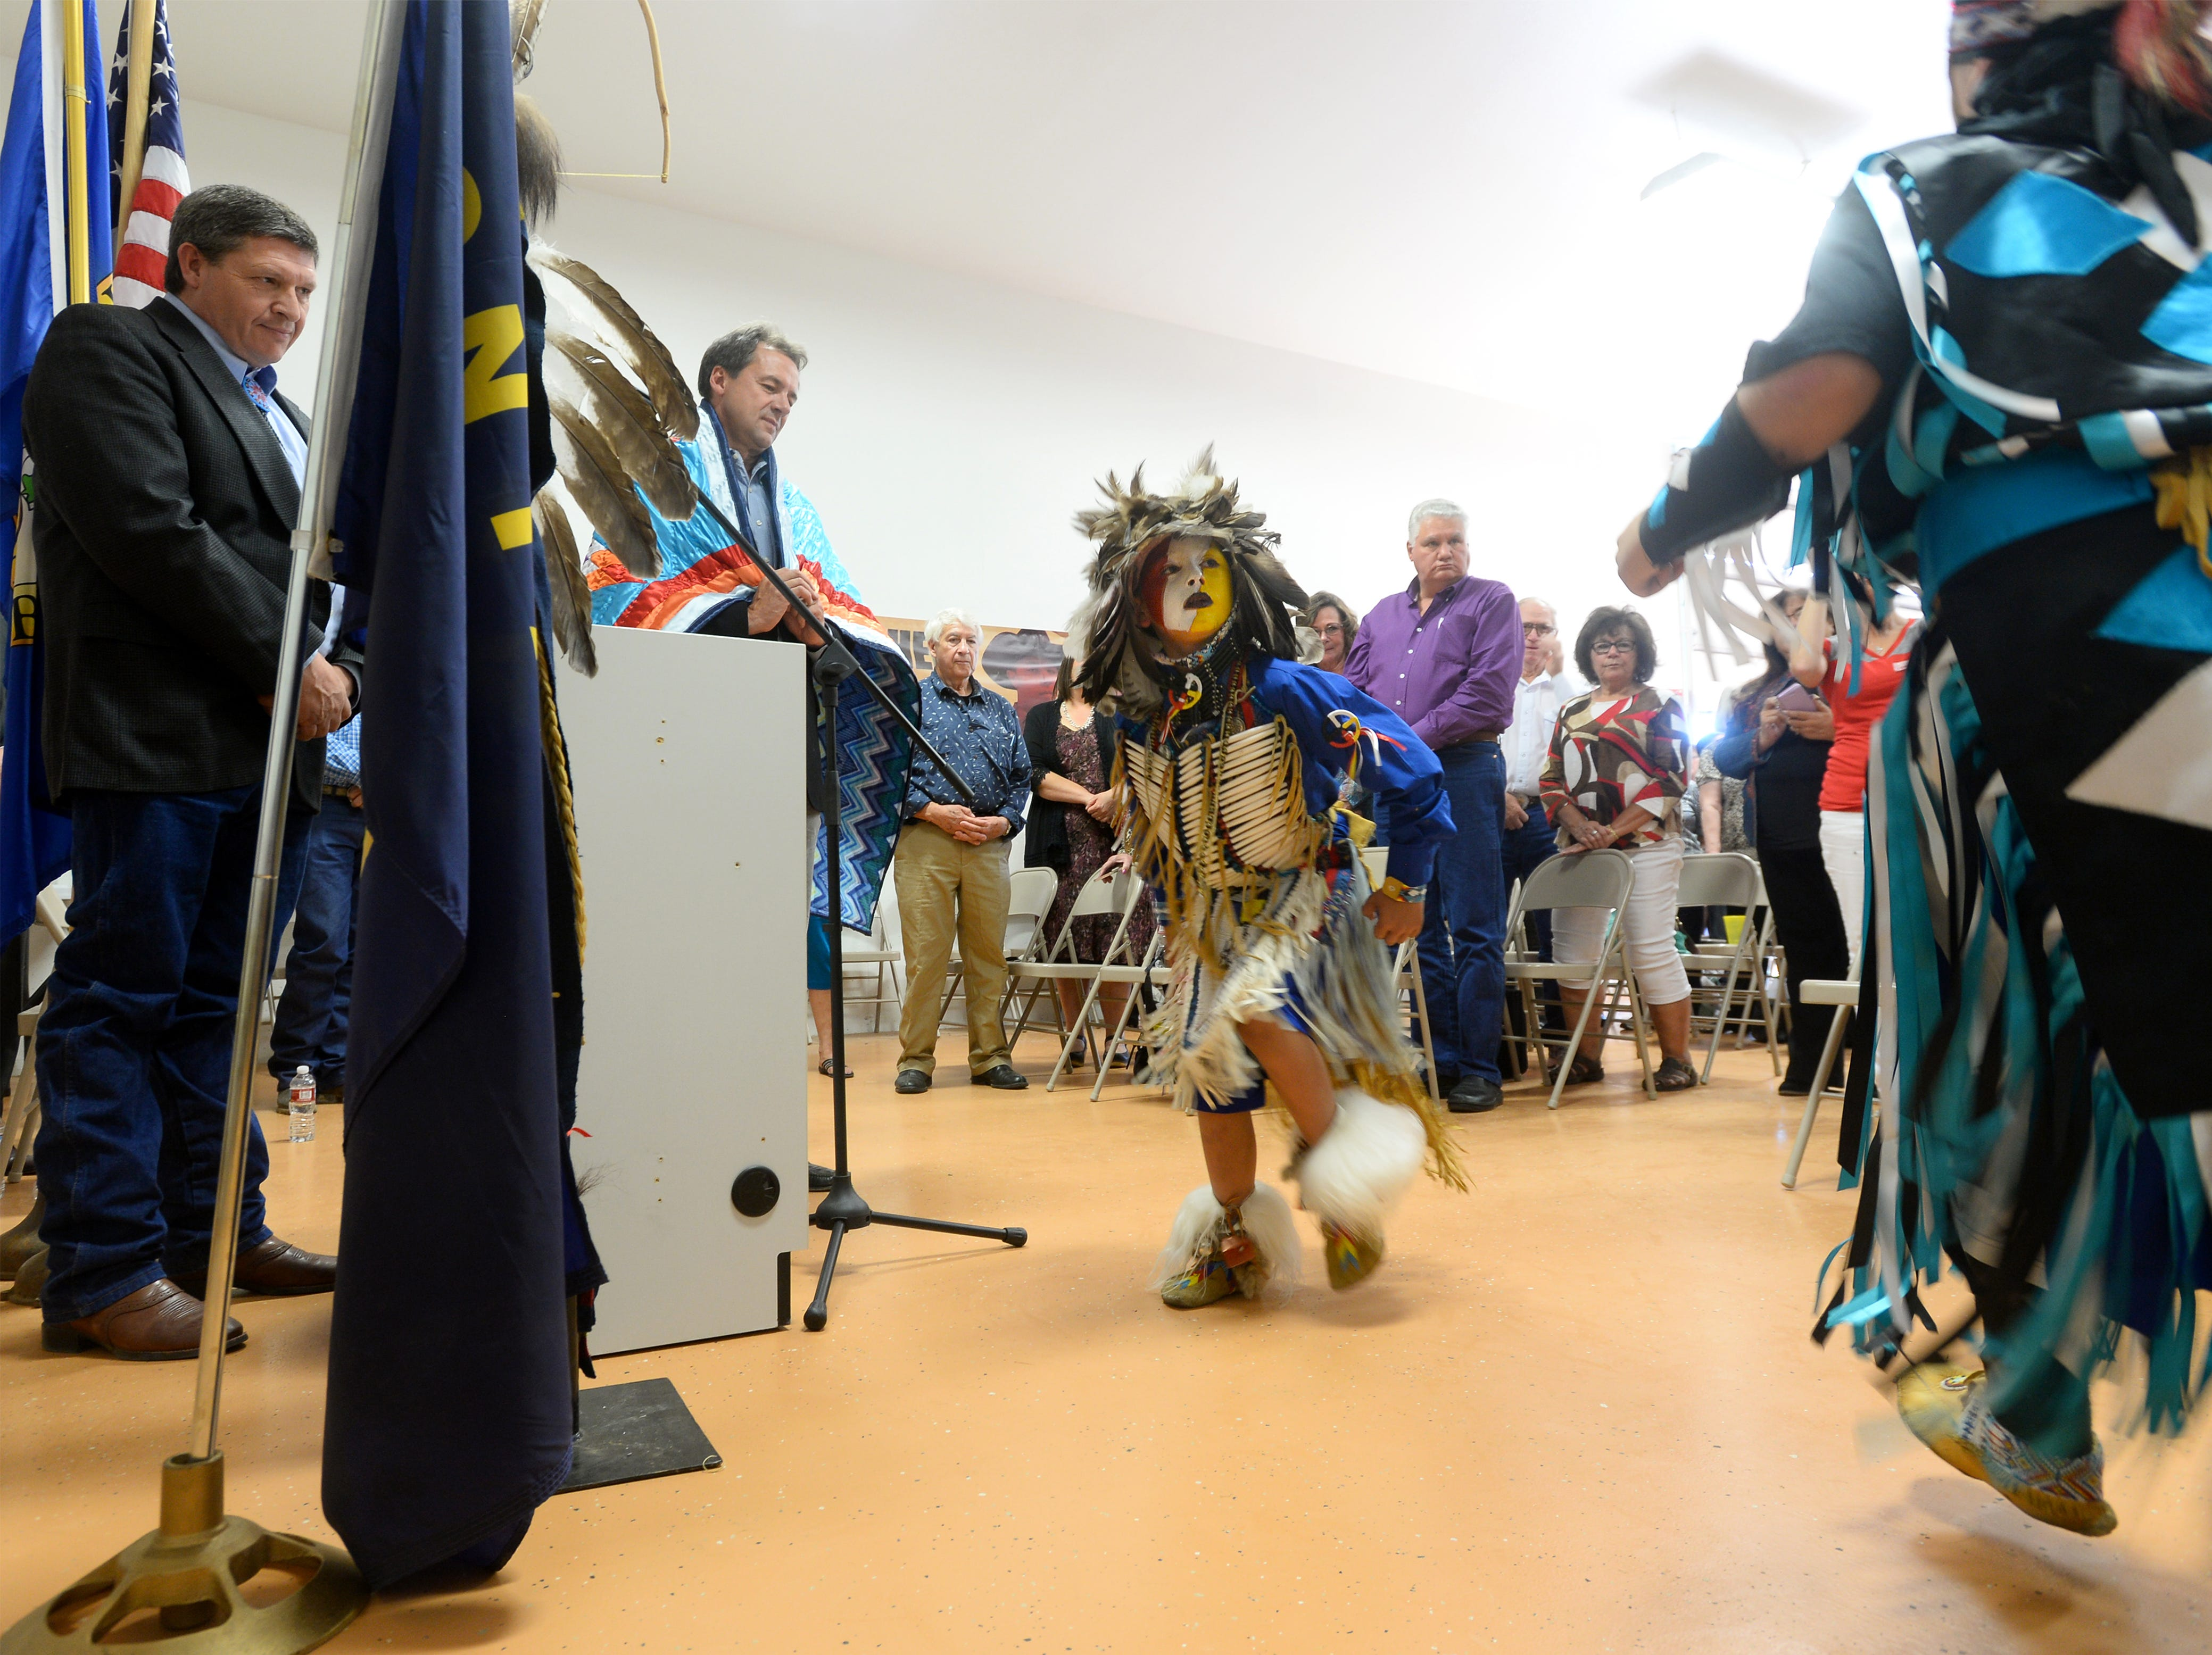 TRIBUNE PHOTO/RION SANDERS Cordiero, center, and Dametries Houle dance to an honor song for Gov. Bullock during the Little Shell Tribe?s recognition event on Thursday. Cordiero, center, and Dametries Houle dance to an honor song for Governor Steve Bullock during the Little Shell Tribe's recognition event on Thursday at the The Little Shell Cultural Center.  At the event Gov. Bullock recognized the Little Shell Tribe Language Program and grant recipients of the Indian Equity Fund.